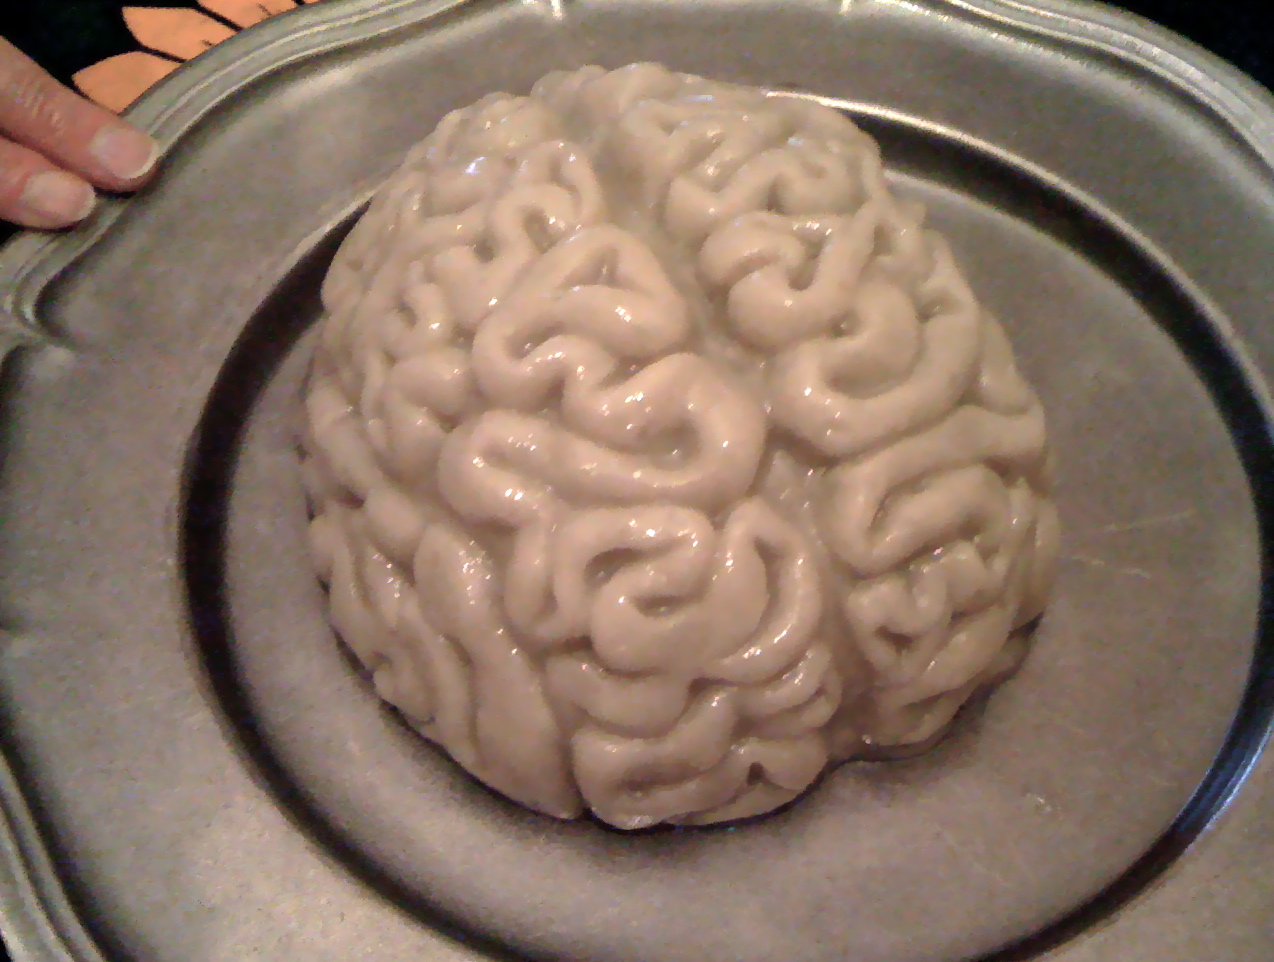 The brain Louise brought for dessert